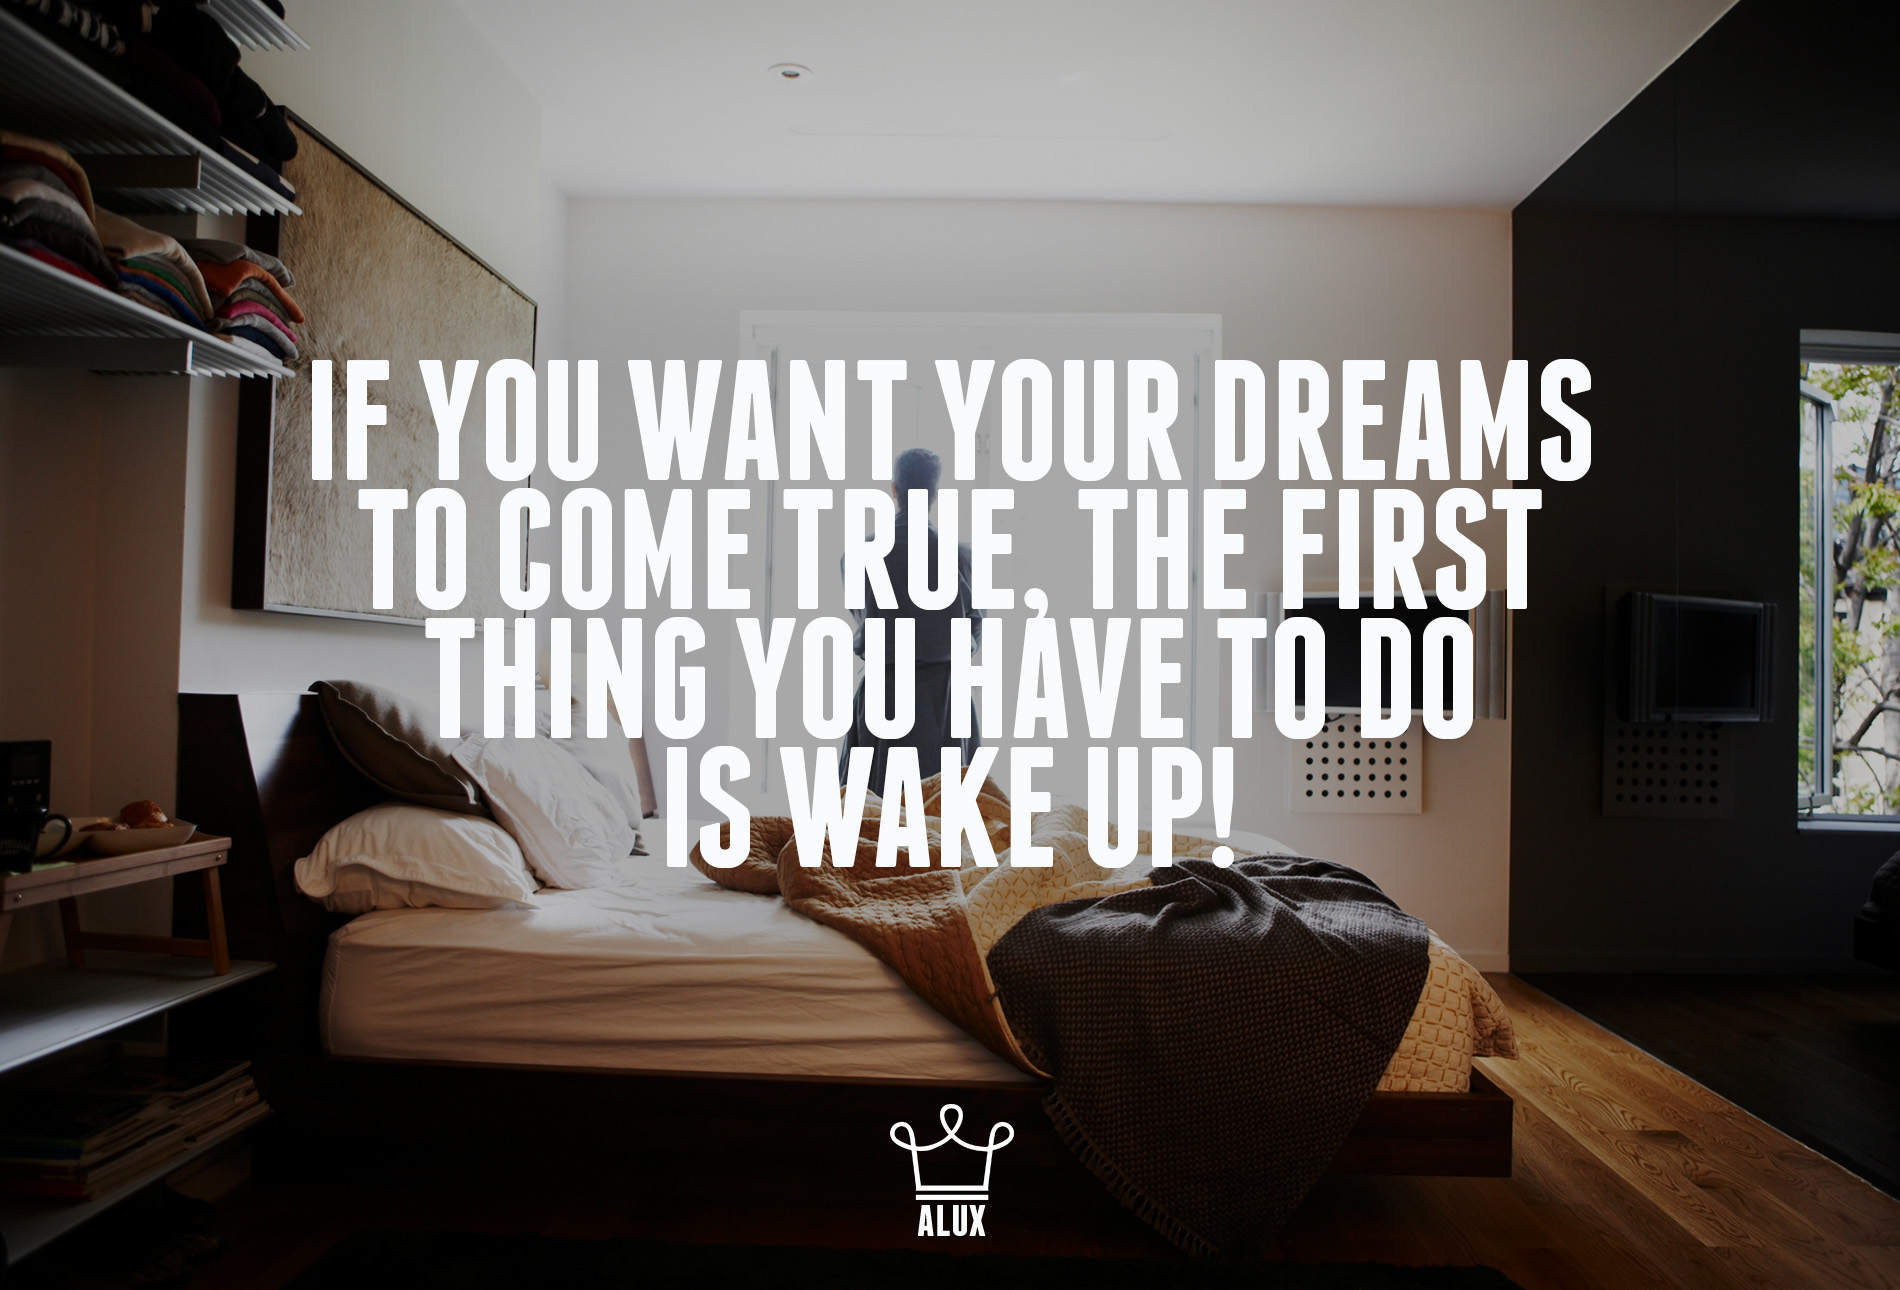 If you want your dreams to come true the first thing you have to wake up alux